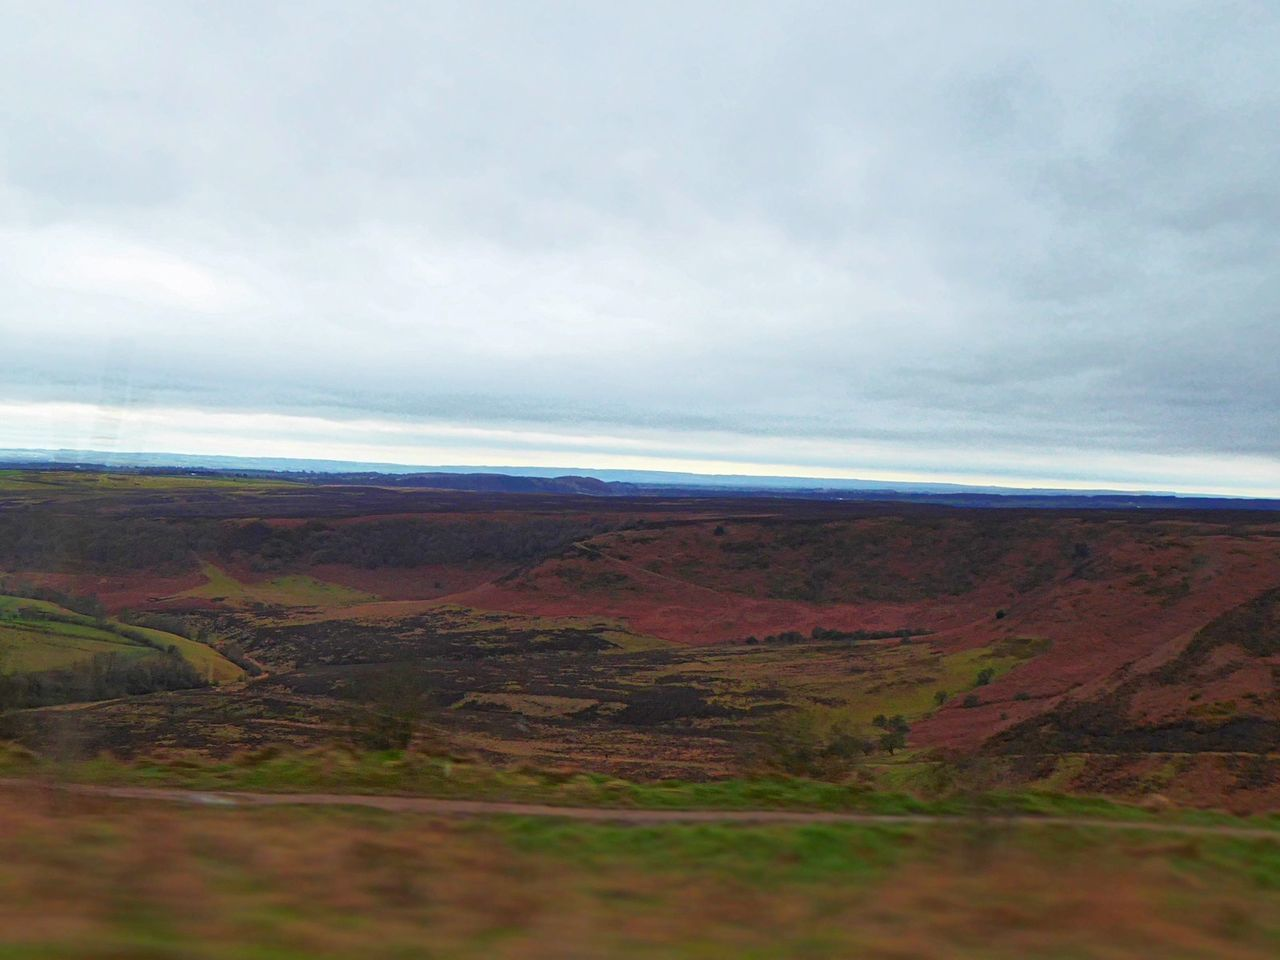 The hole of horcum..a 400ft deep valley & part of 554 sq miles of the north yorkshire moors national park (untouched land) just nature at its best 💖 Drivebyphotography Landscape Nature Scenics Outdoors Beauty In Nature Sky Tranquility Agriculture Cloud - Sky Rural Scene No People Tranquil Scene Growth Day